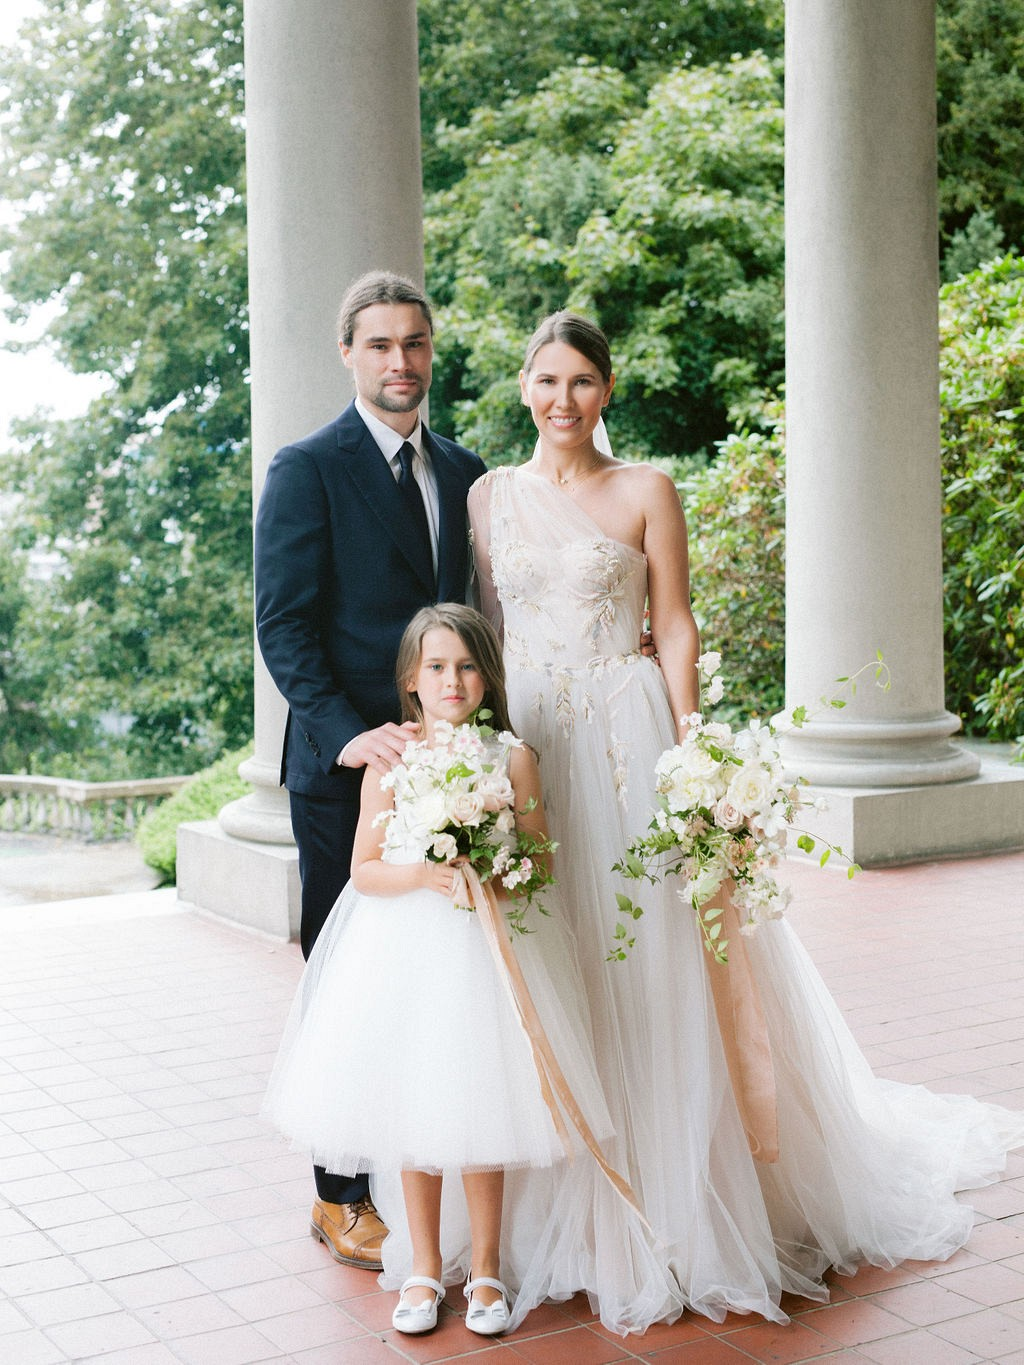 Rainy Day Elopement at Hycroft Manor